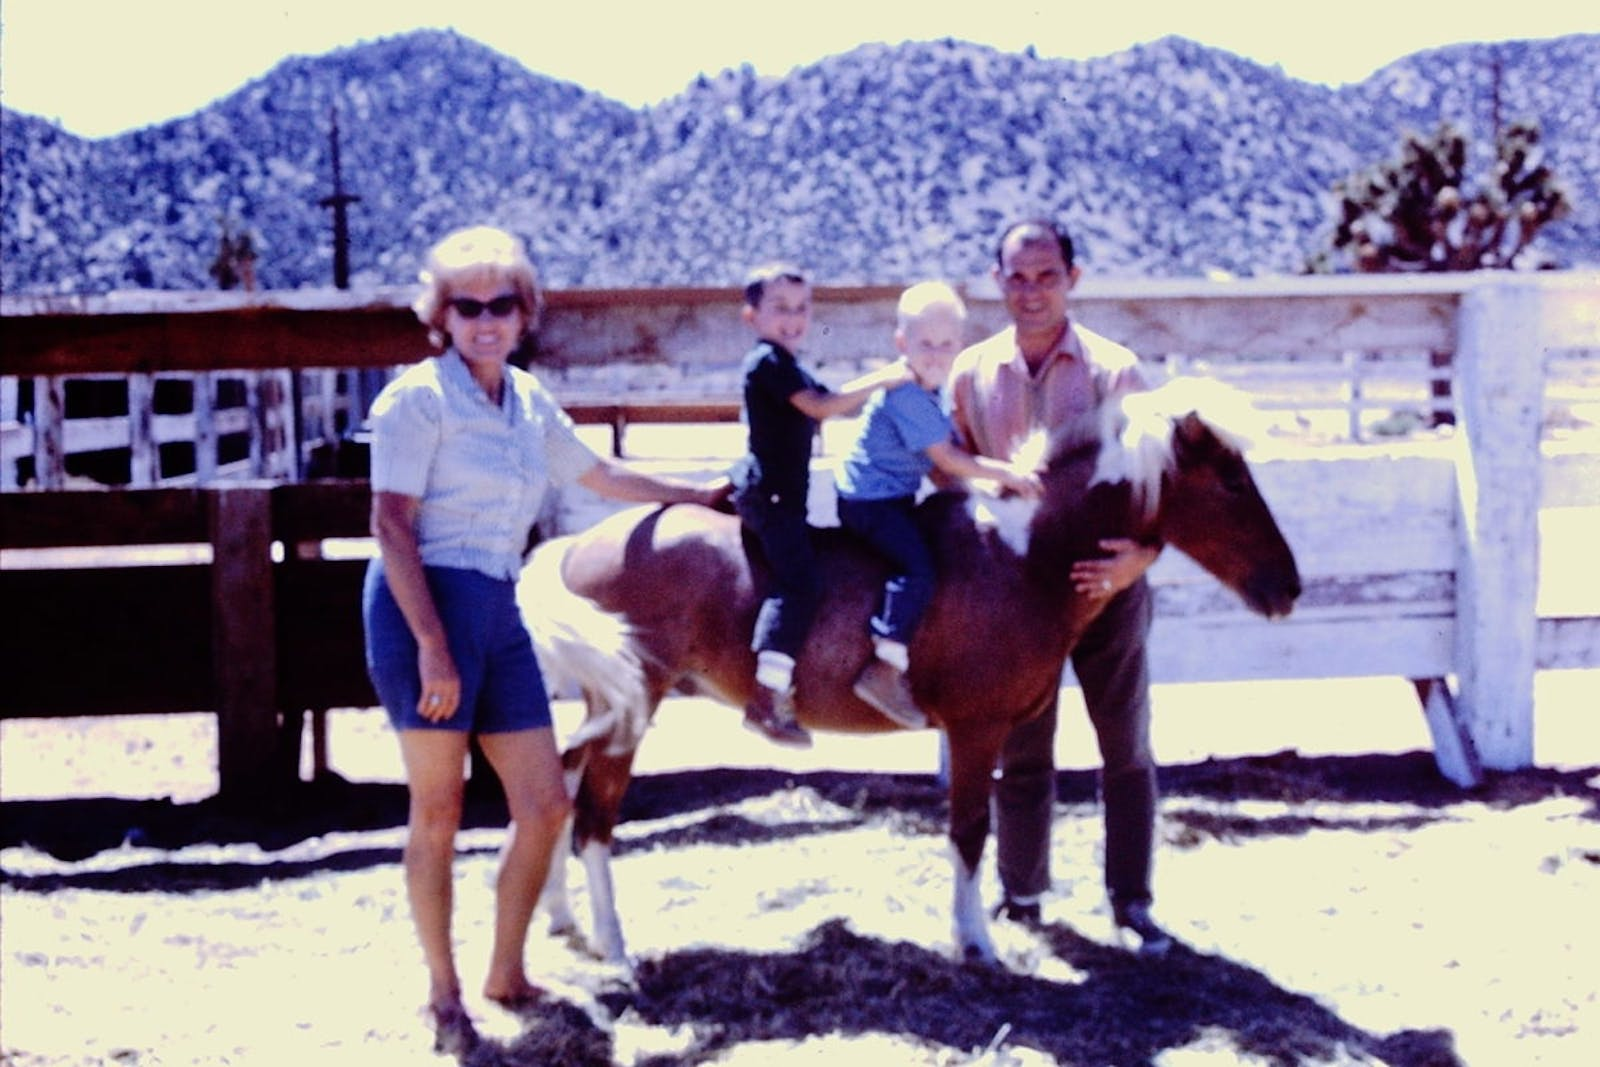 Pony ride at the OK Corral in 1968